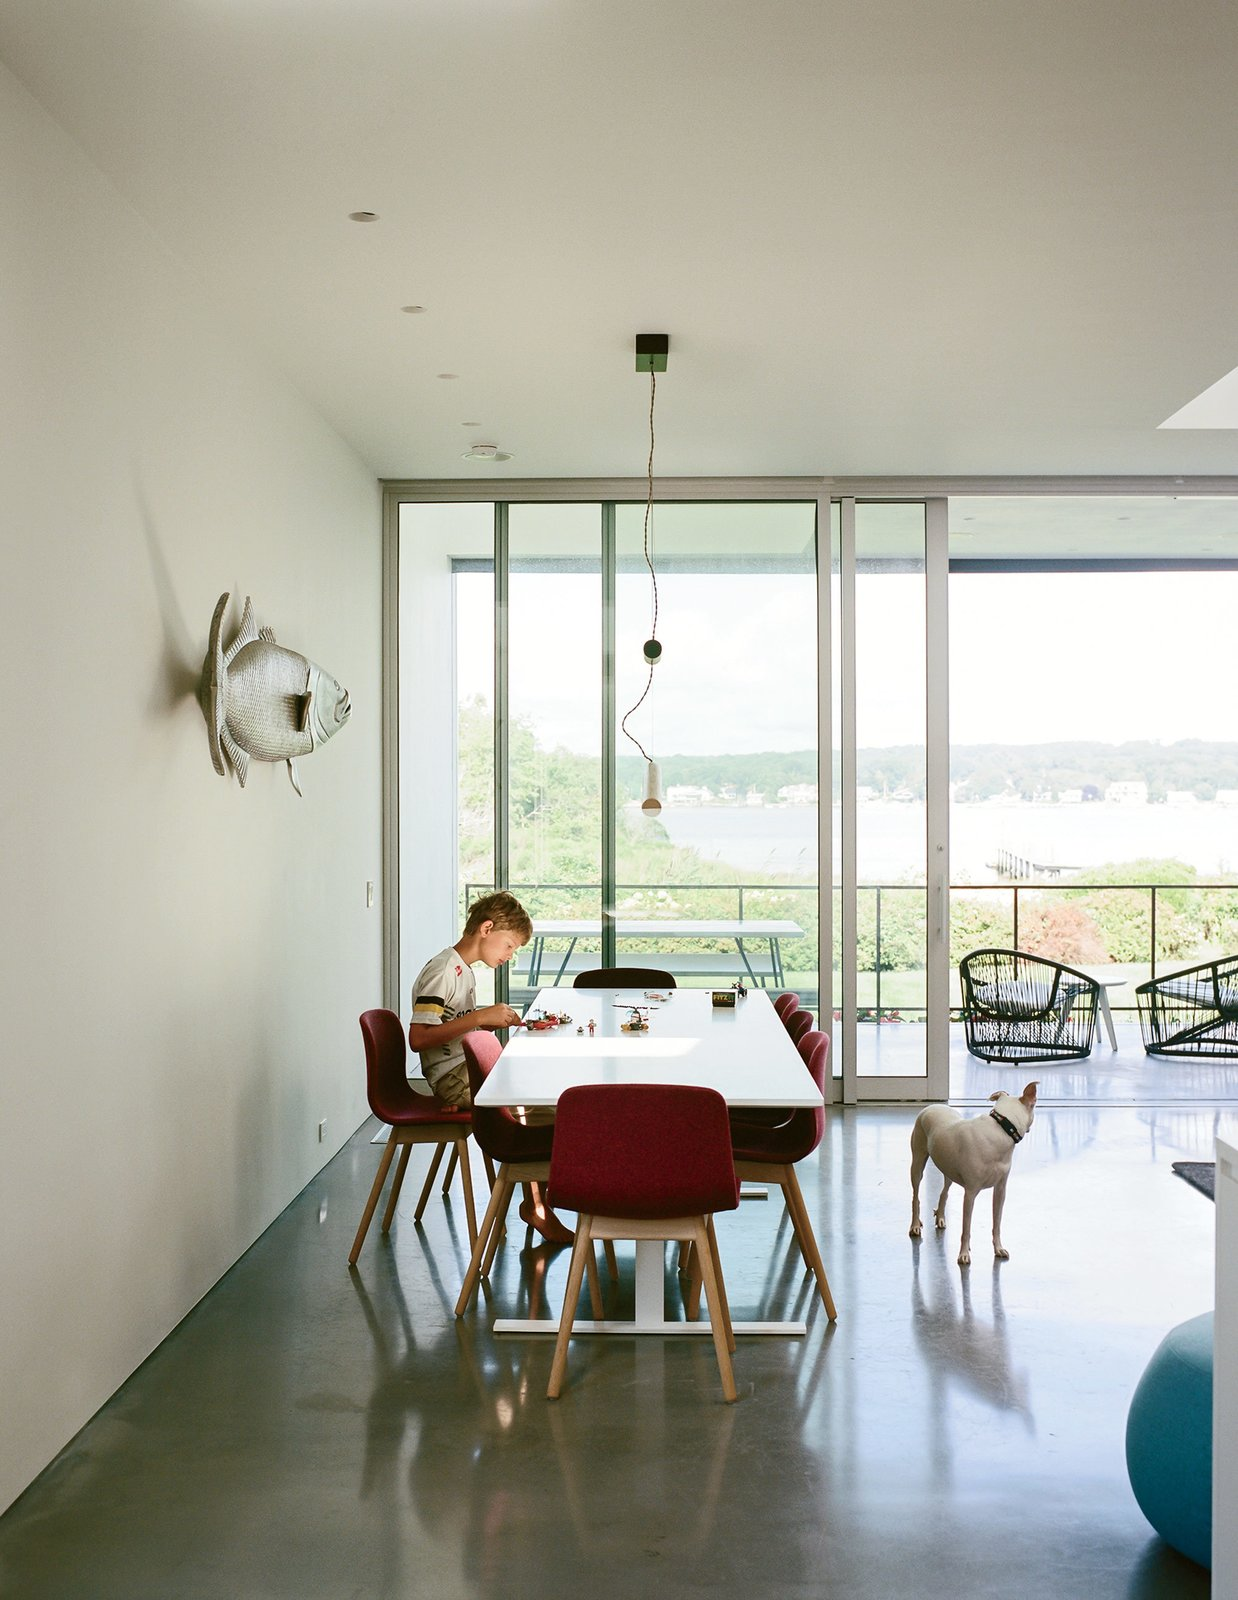 In the home's west-facing wing oriented toward the pond, Christopher, 10, sits in the dining area, furnished with a Luxor table by Cappellini, chairs by HAY, and a Counterweight pendant by Fort Standard. The fish sculpture is by Mark A. Perry, a local folk artist. An Idyllic Rhode Island Summer Cottage Is the Perfect Escape for a New York Family - Photo 11 of 16